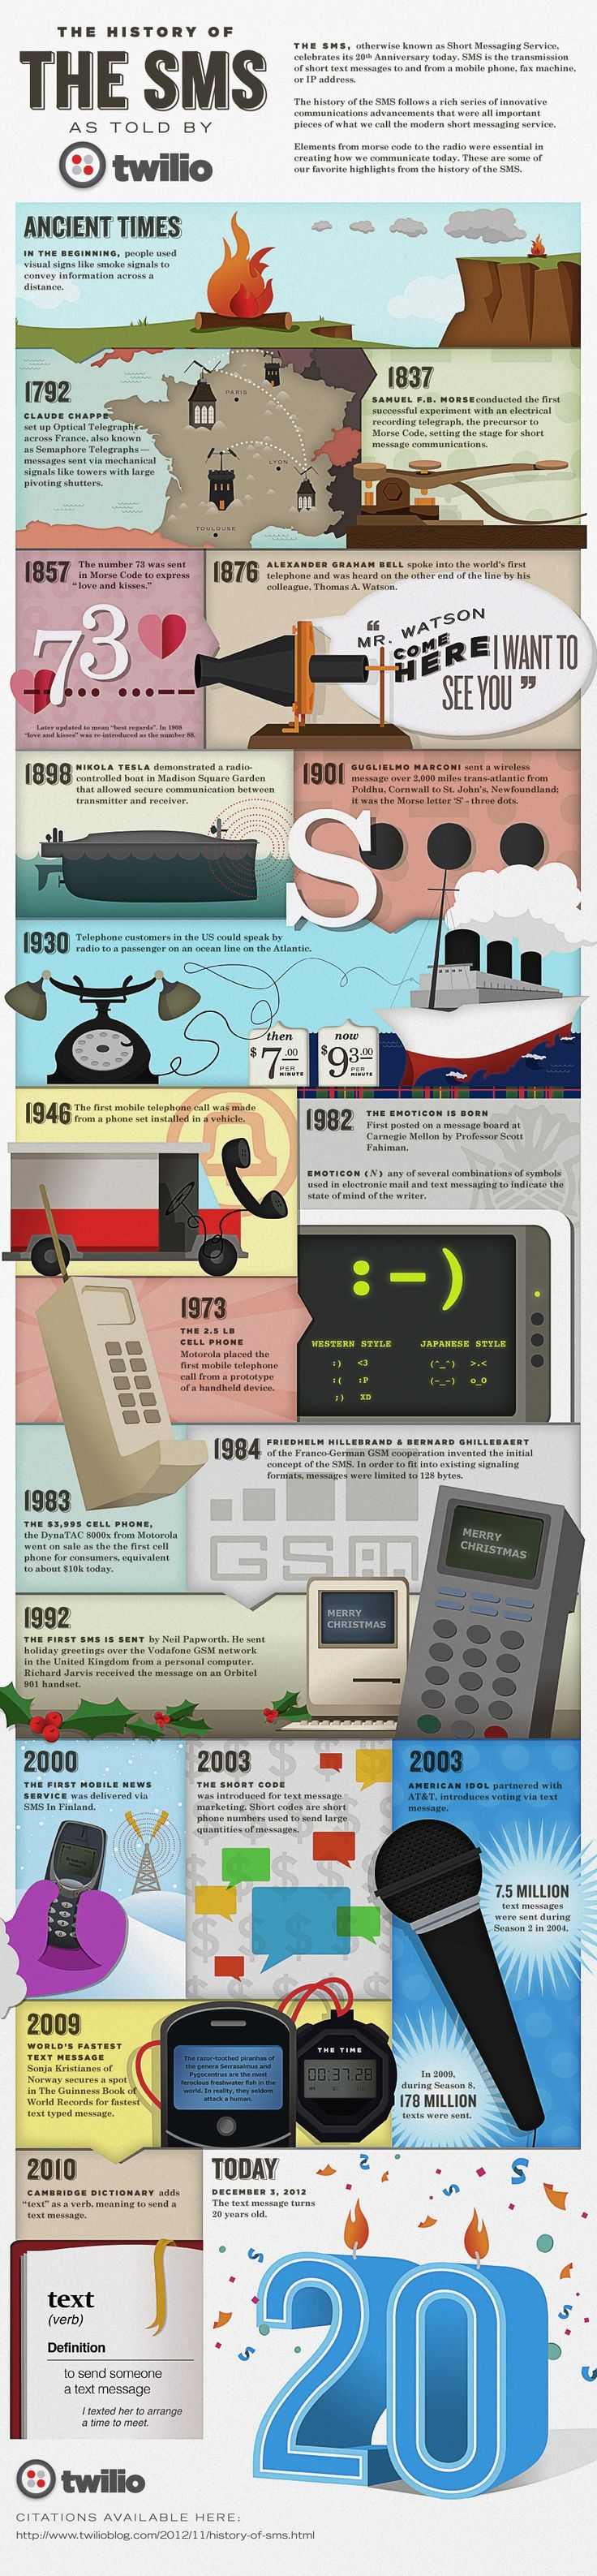 Texting turns 20 the history of sms